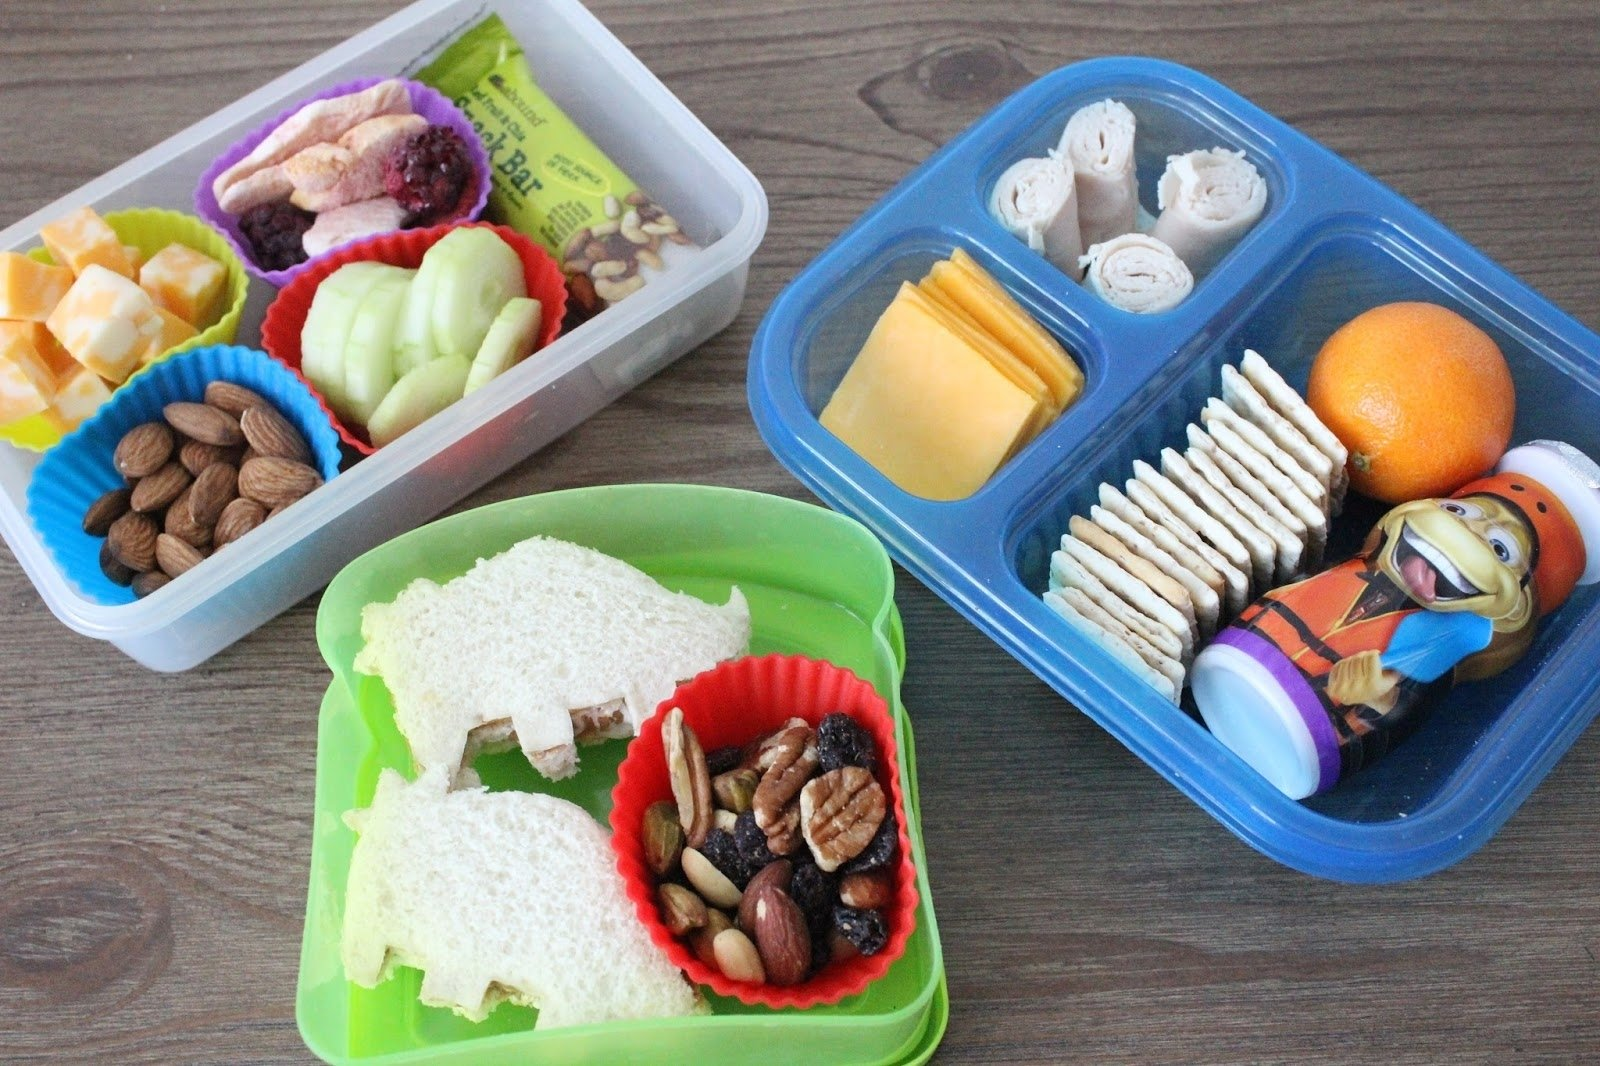 10 Pretty Healthy Lunch Ideas For Picky Eaters easy school lunches for picky eaters stilettos diapers 5 2020